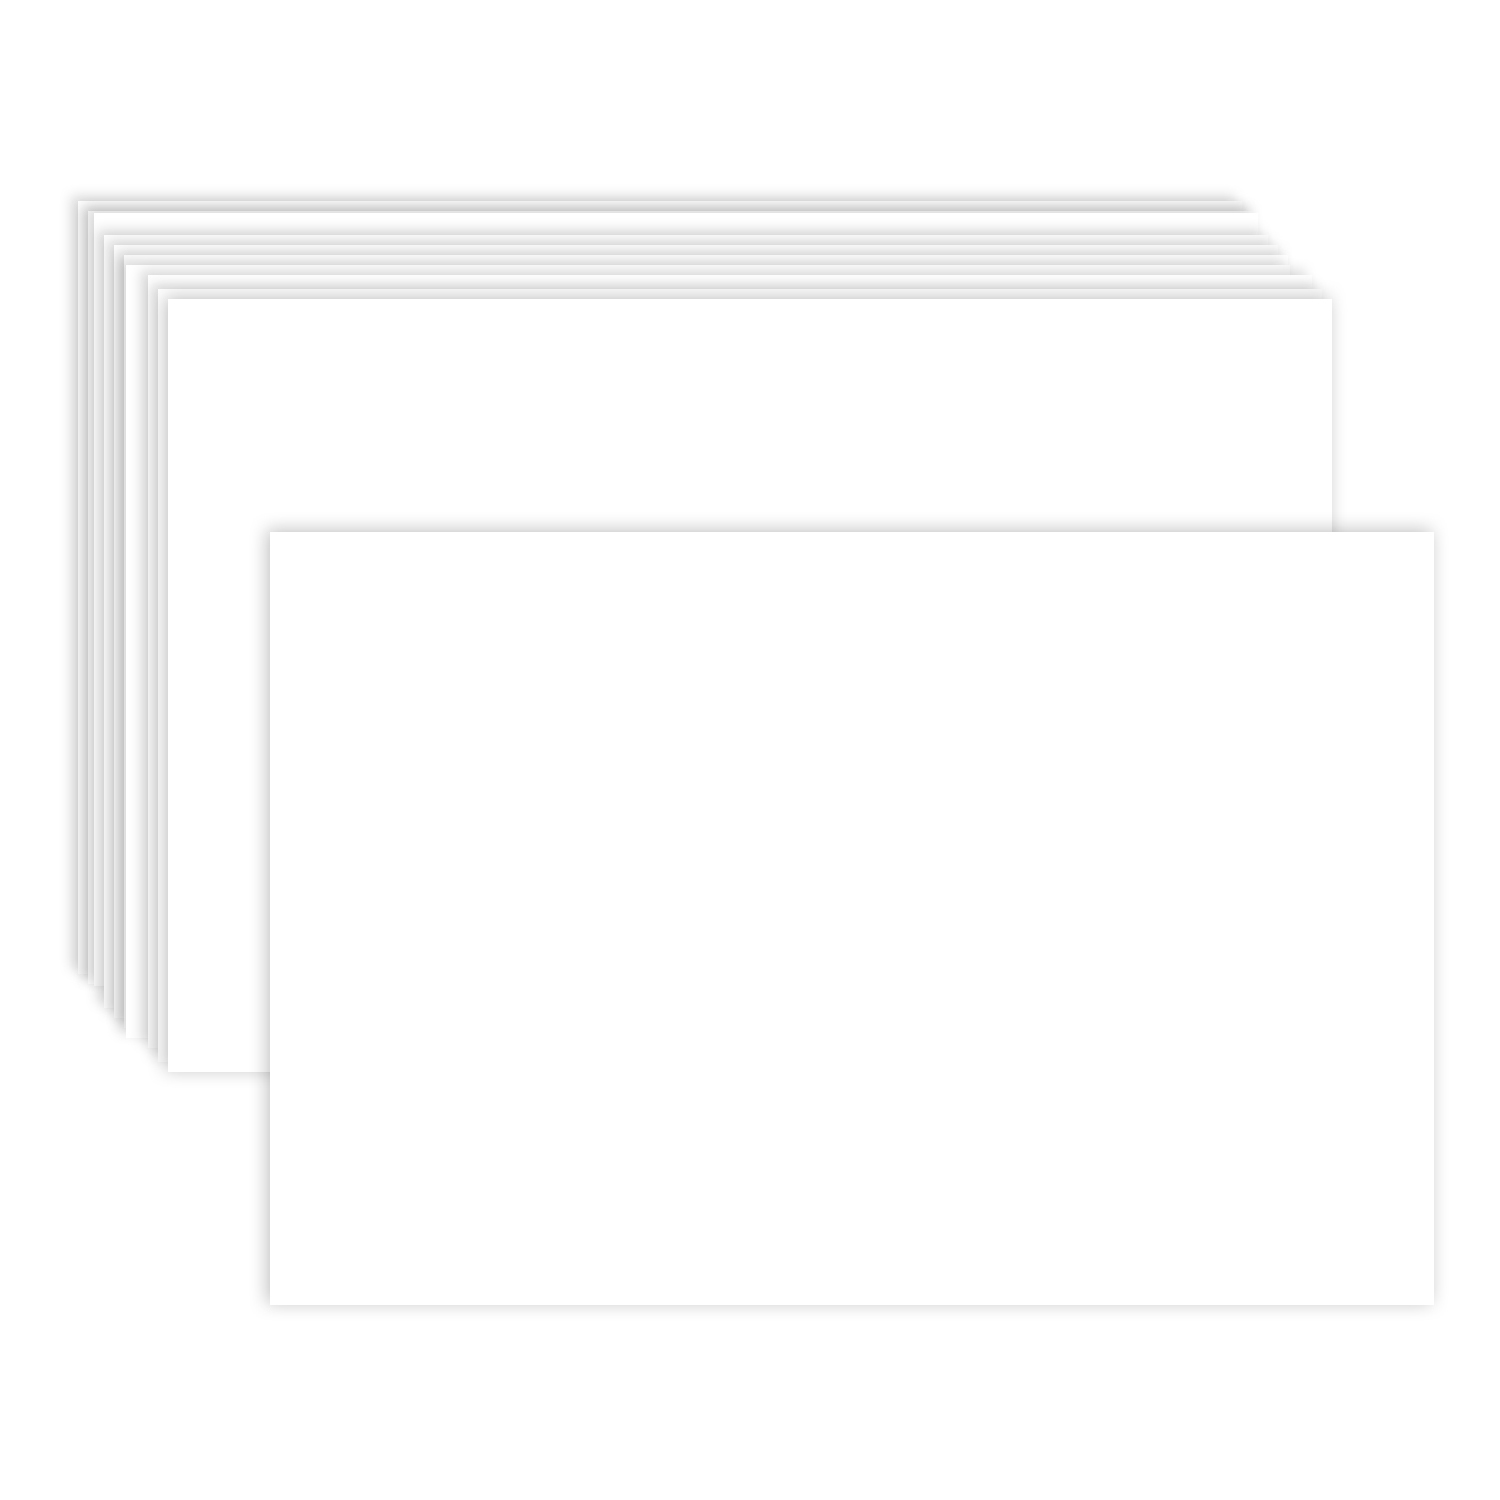 4″ X 6″ Flat Note Cards